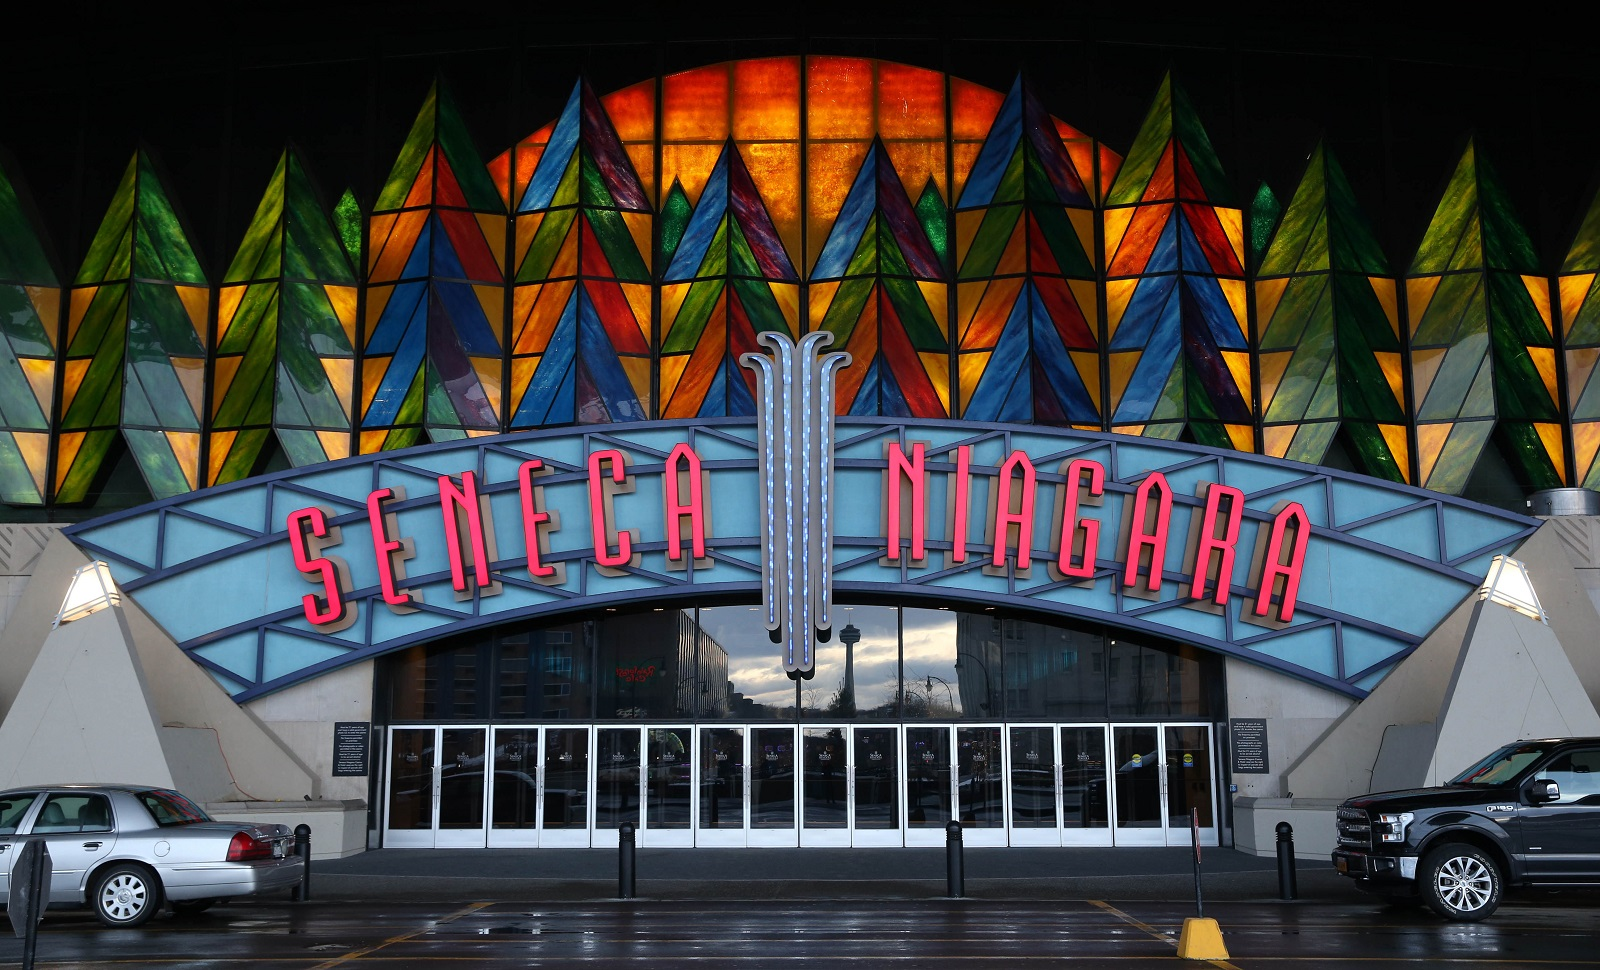 Gov. Cuomo is threatening to put a casino in Niagara Falls if the Seneca Nation doesn't continue payments to municipalities. (Sharon Cantillon/Buffalo News)